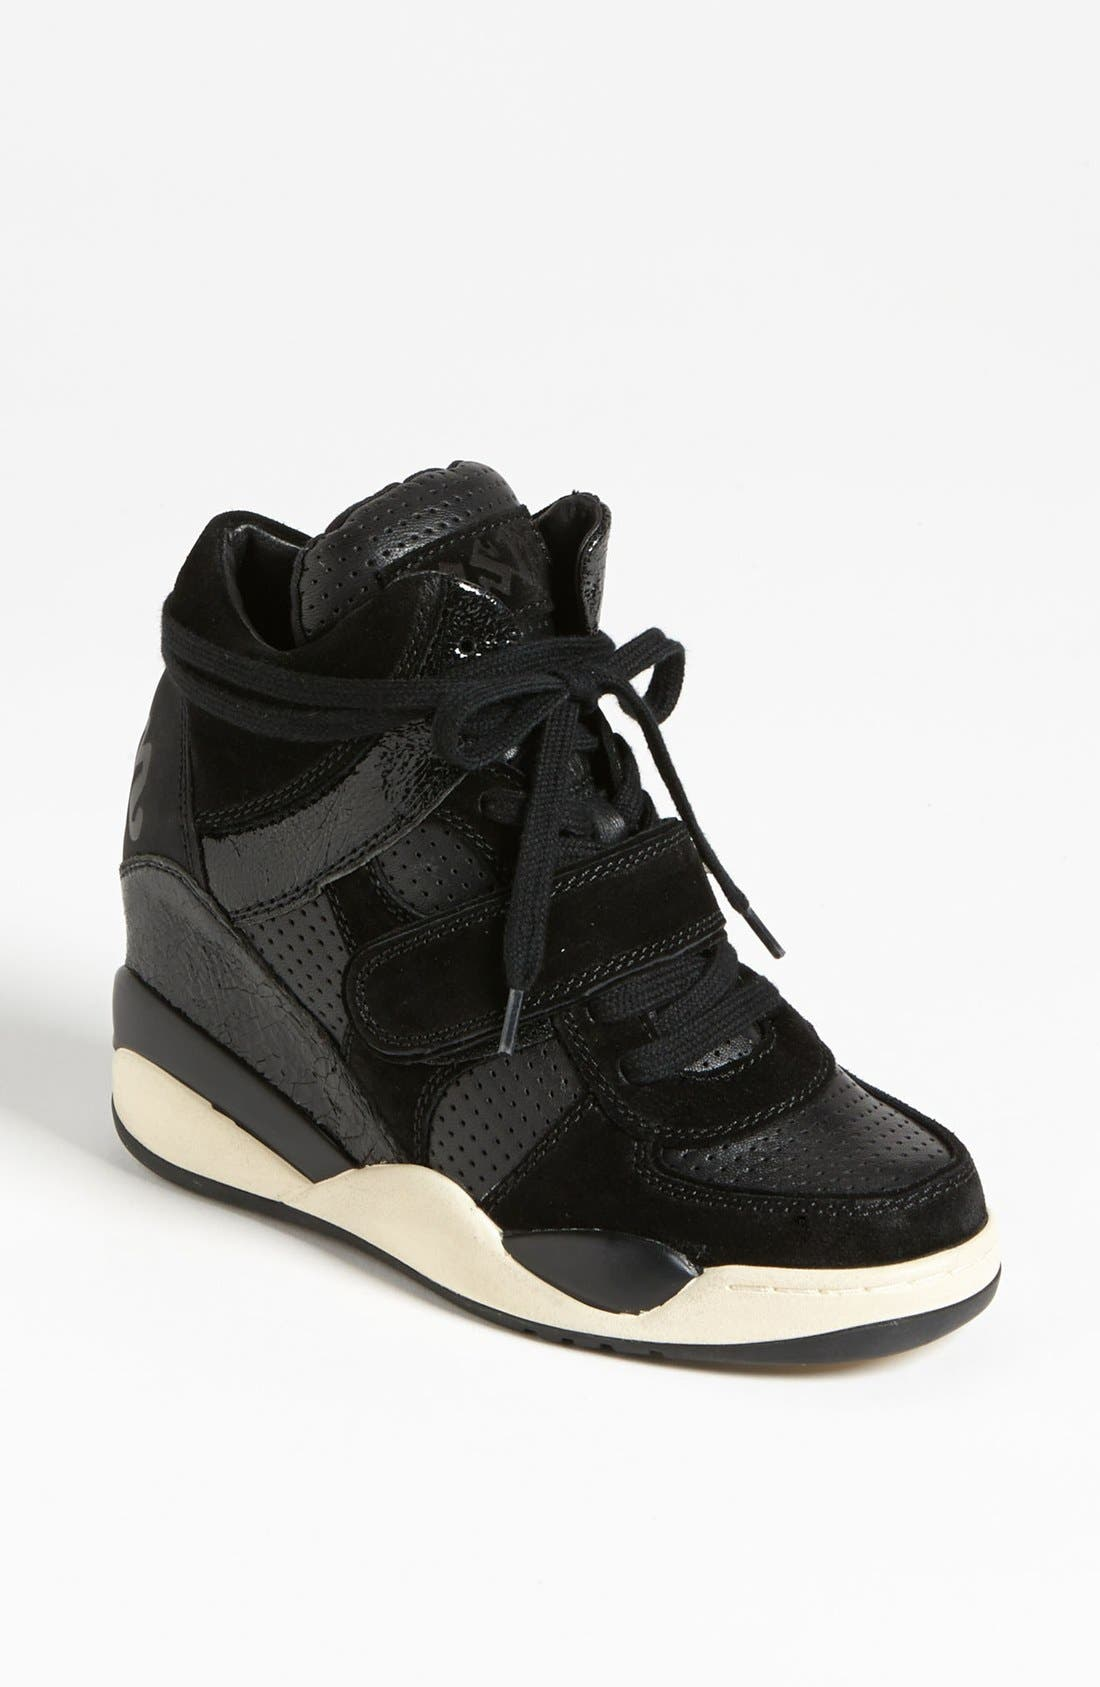 Alternate Image 1 Selected - Ash 'Funky Ter' Sneaker (Nordstrom Exclusive)